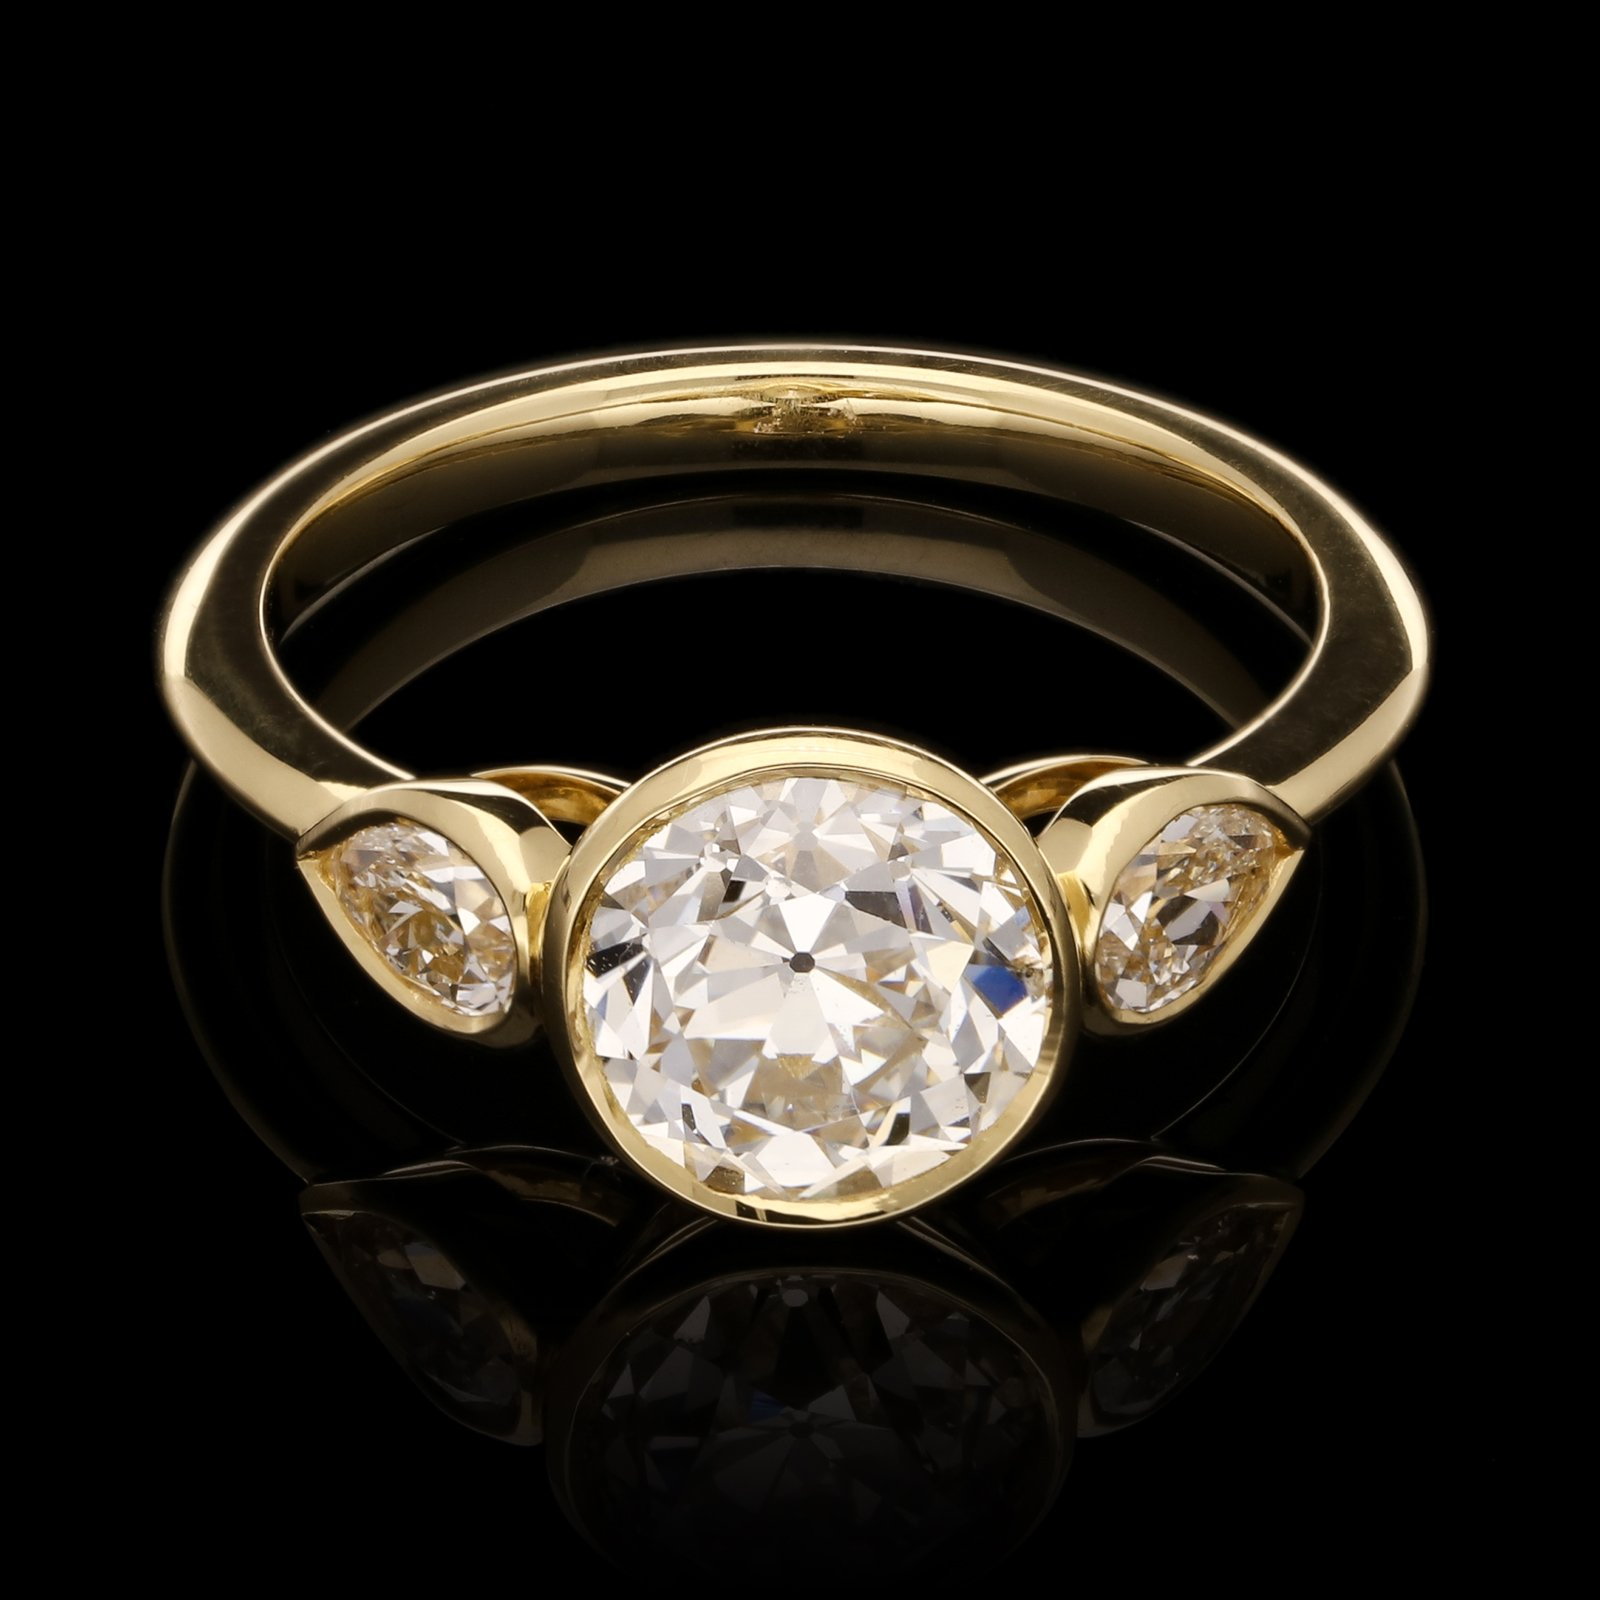 New Bezel Collection Launch